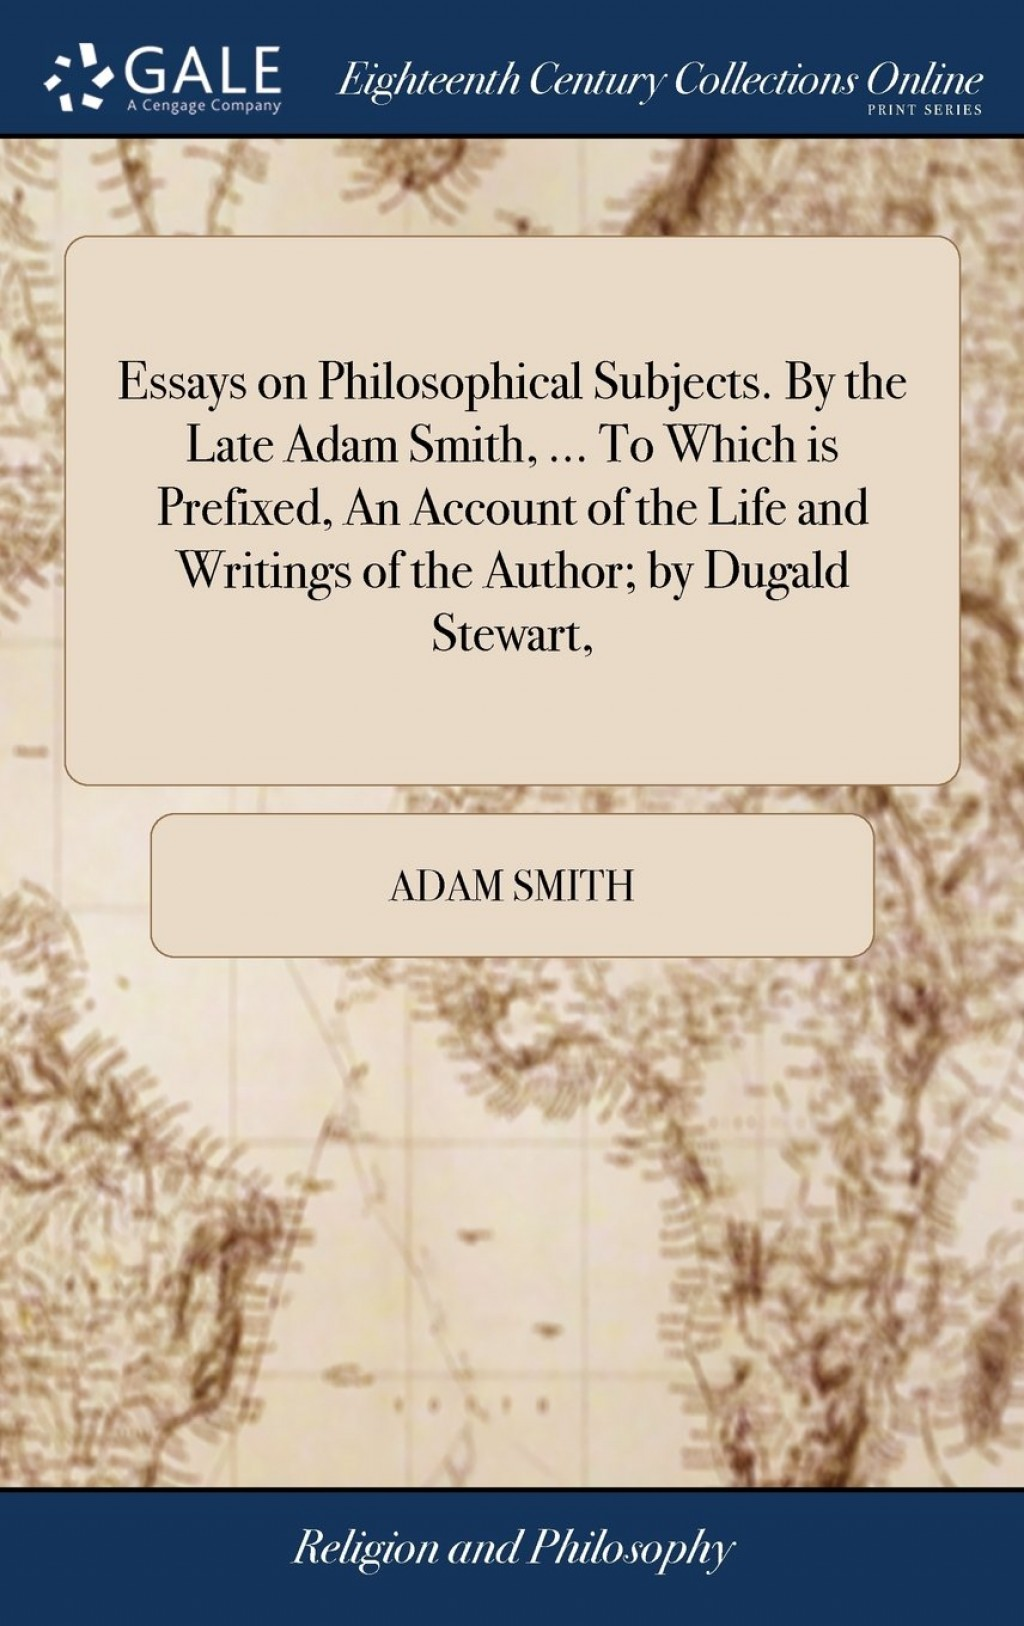 003 710kw3nycfl Essays On Philosophical Subjects Essay Best Summary Adam Smith Large